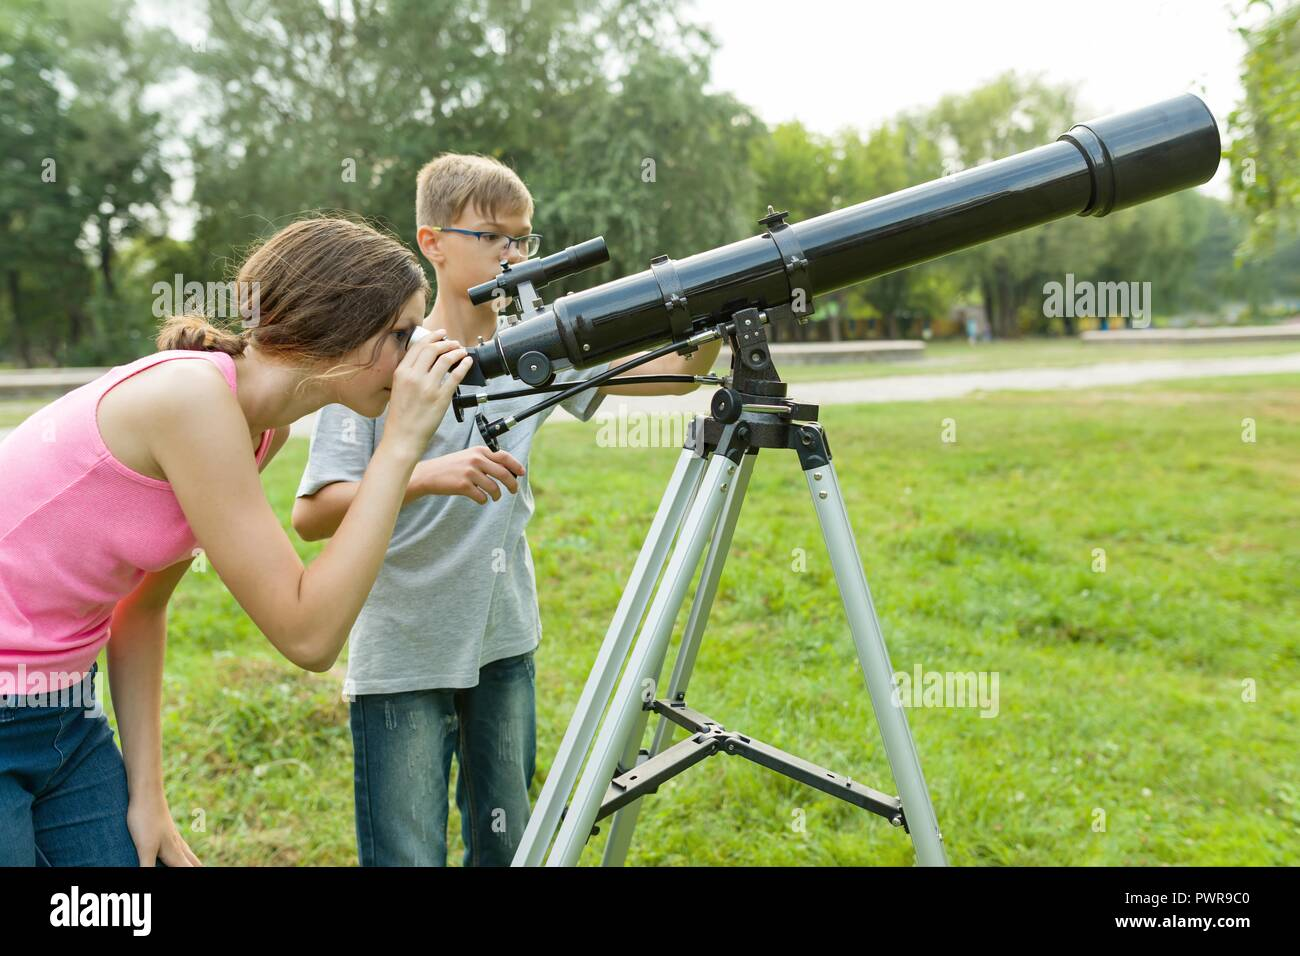 Children teenagers with telescope look at the sky in nature. - Stock Image